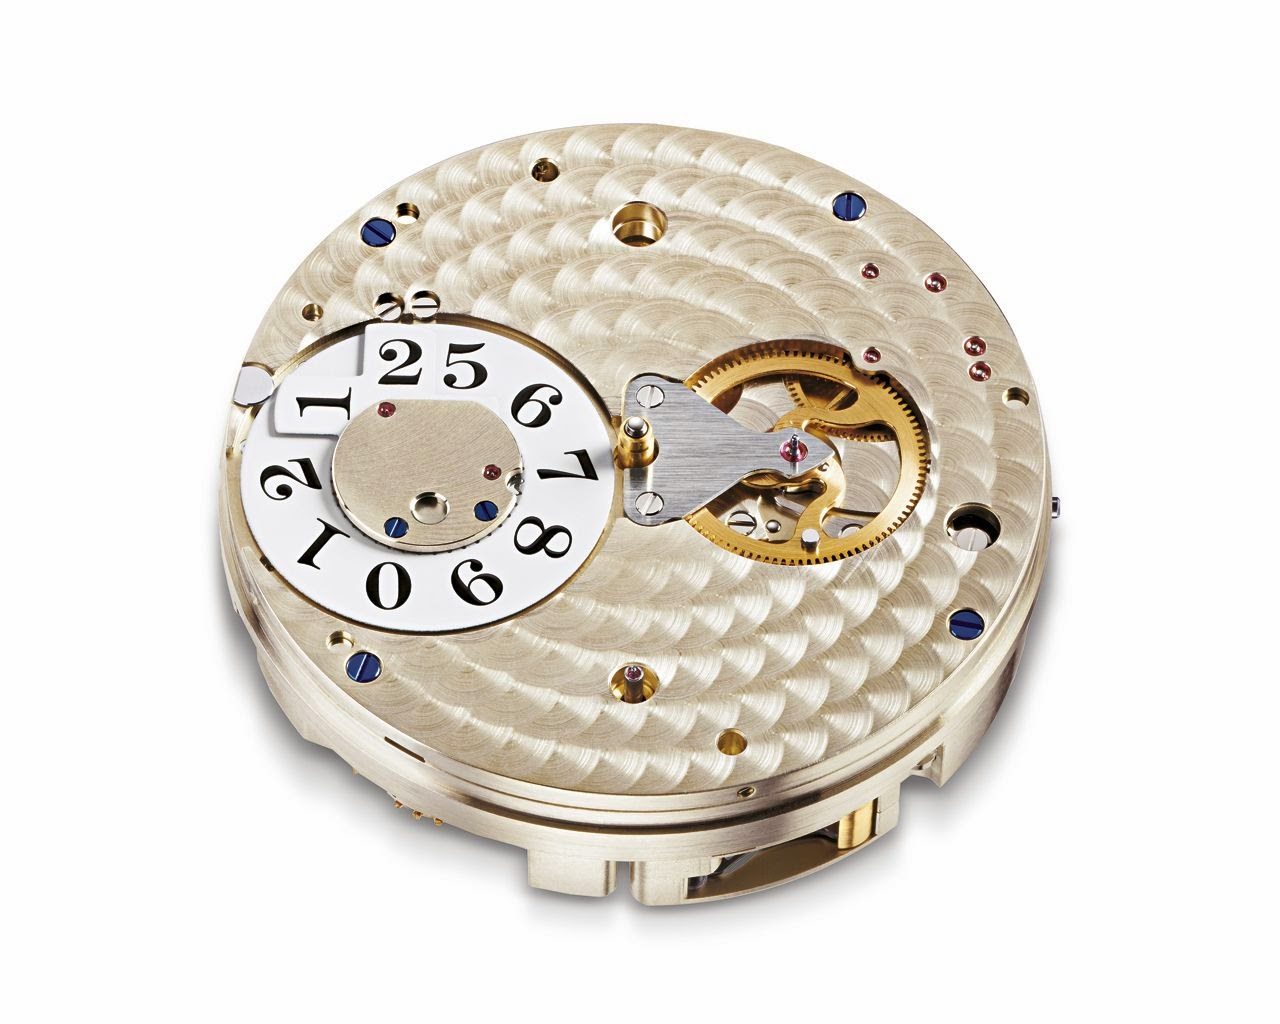 A LANGE AND SOHNE - LANGE 31 movement 1